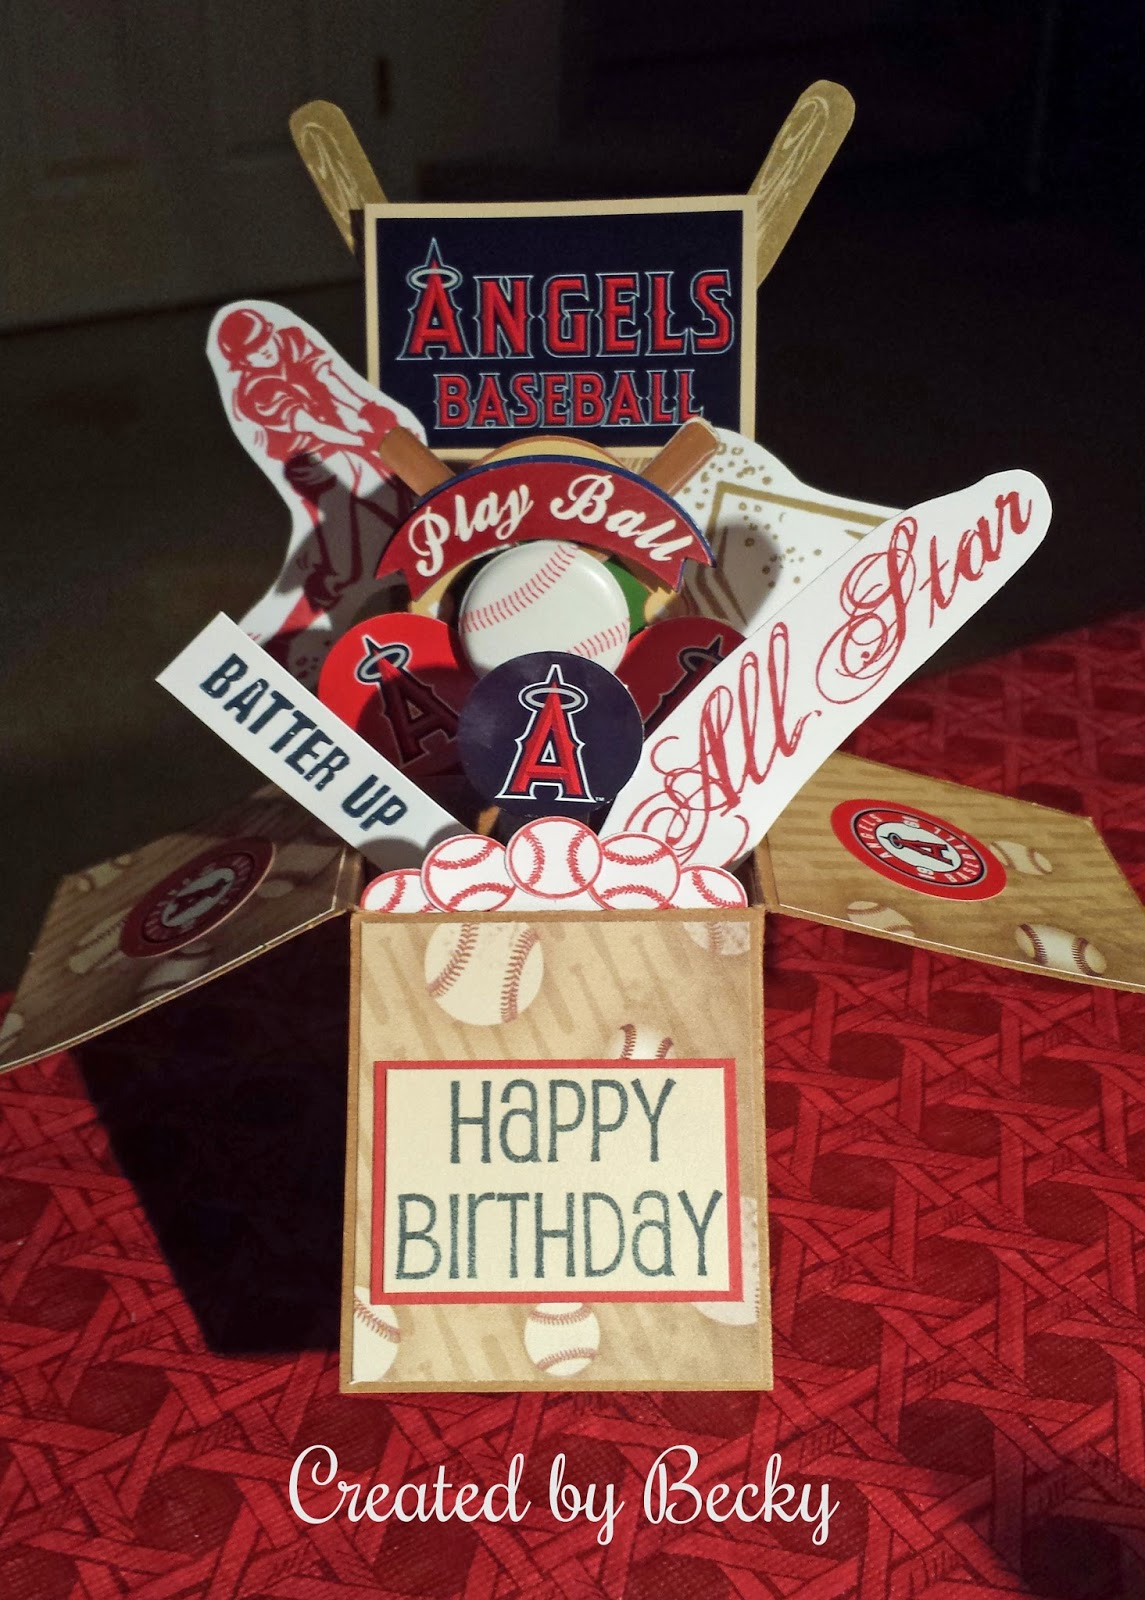 Creative Bliss Baseball Birthday Card in a Box by Becky